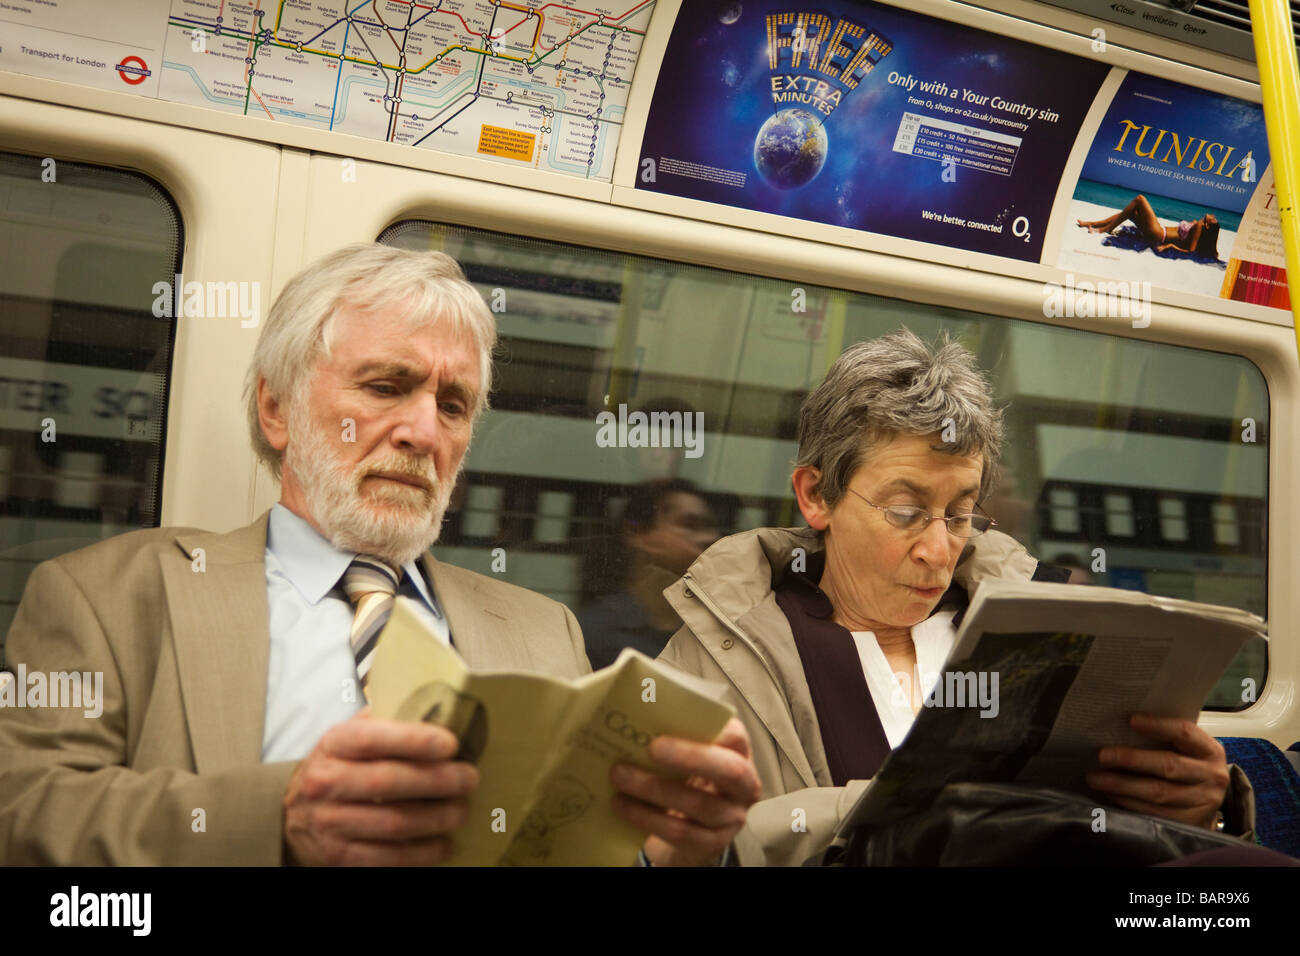 couple reading, London Underground, London, England - Stock Image